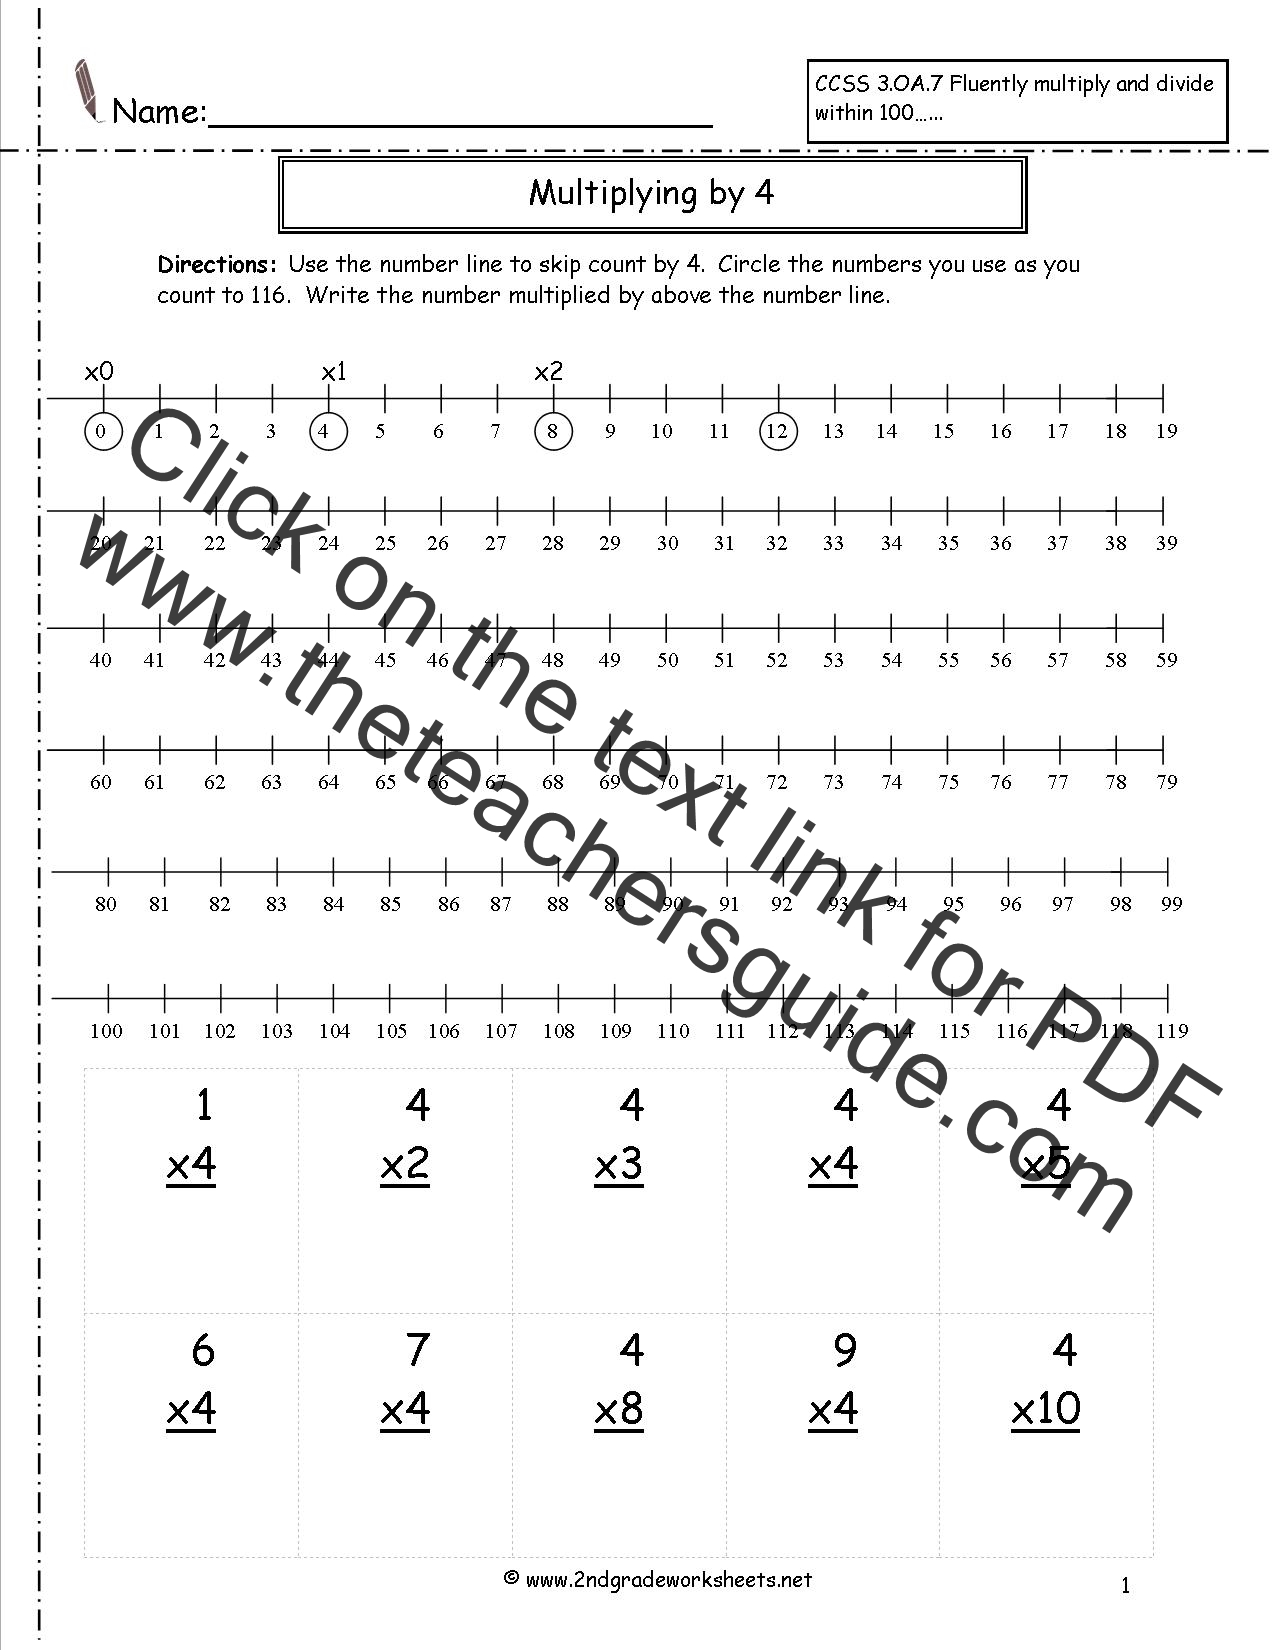 Multiplication Worksheets and Printouts – Multiply by 4 Worksheets